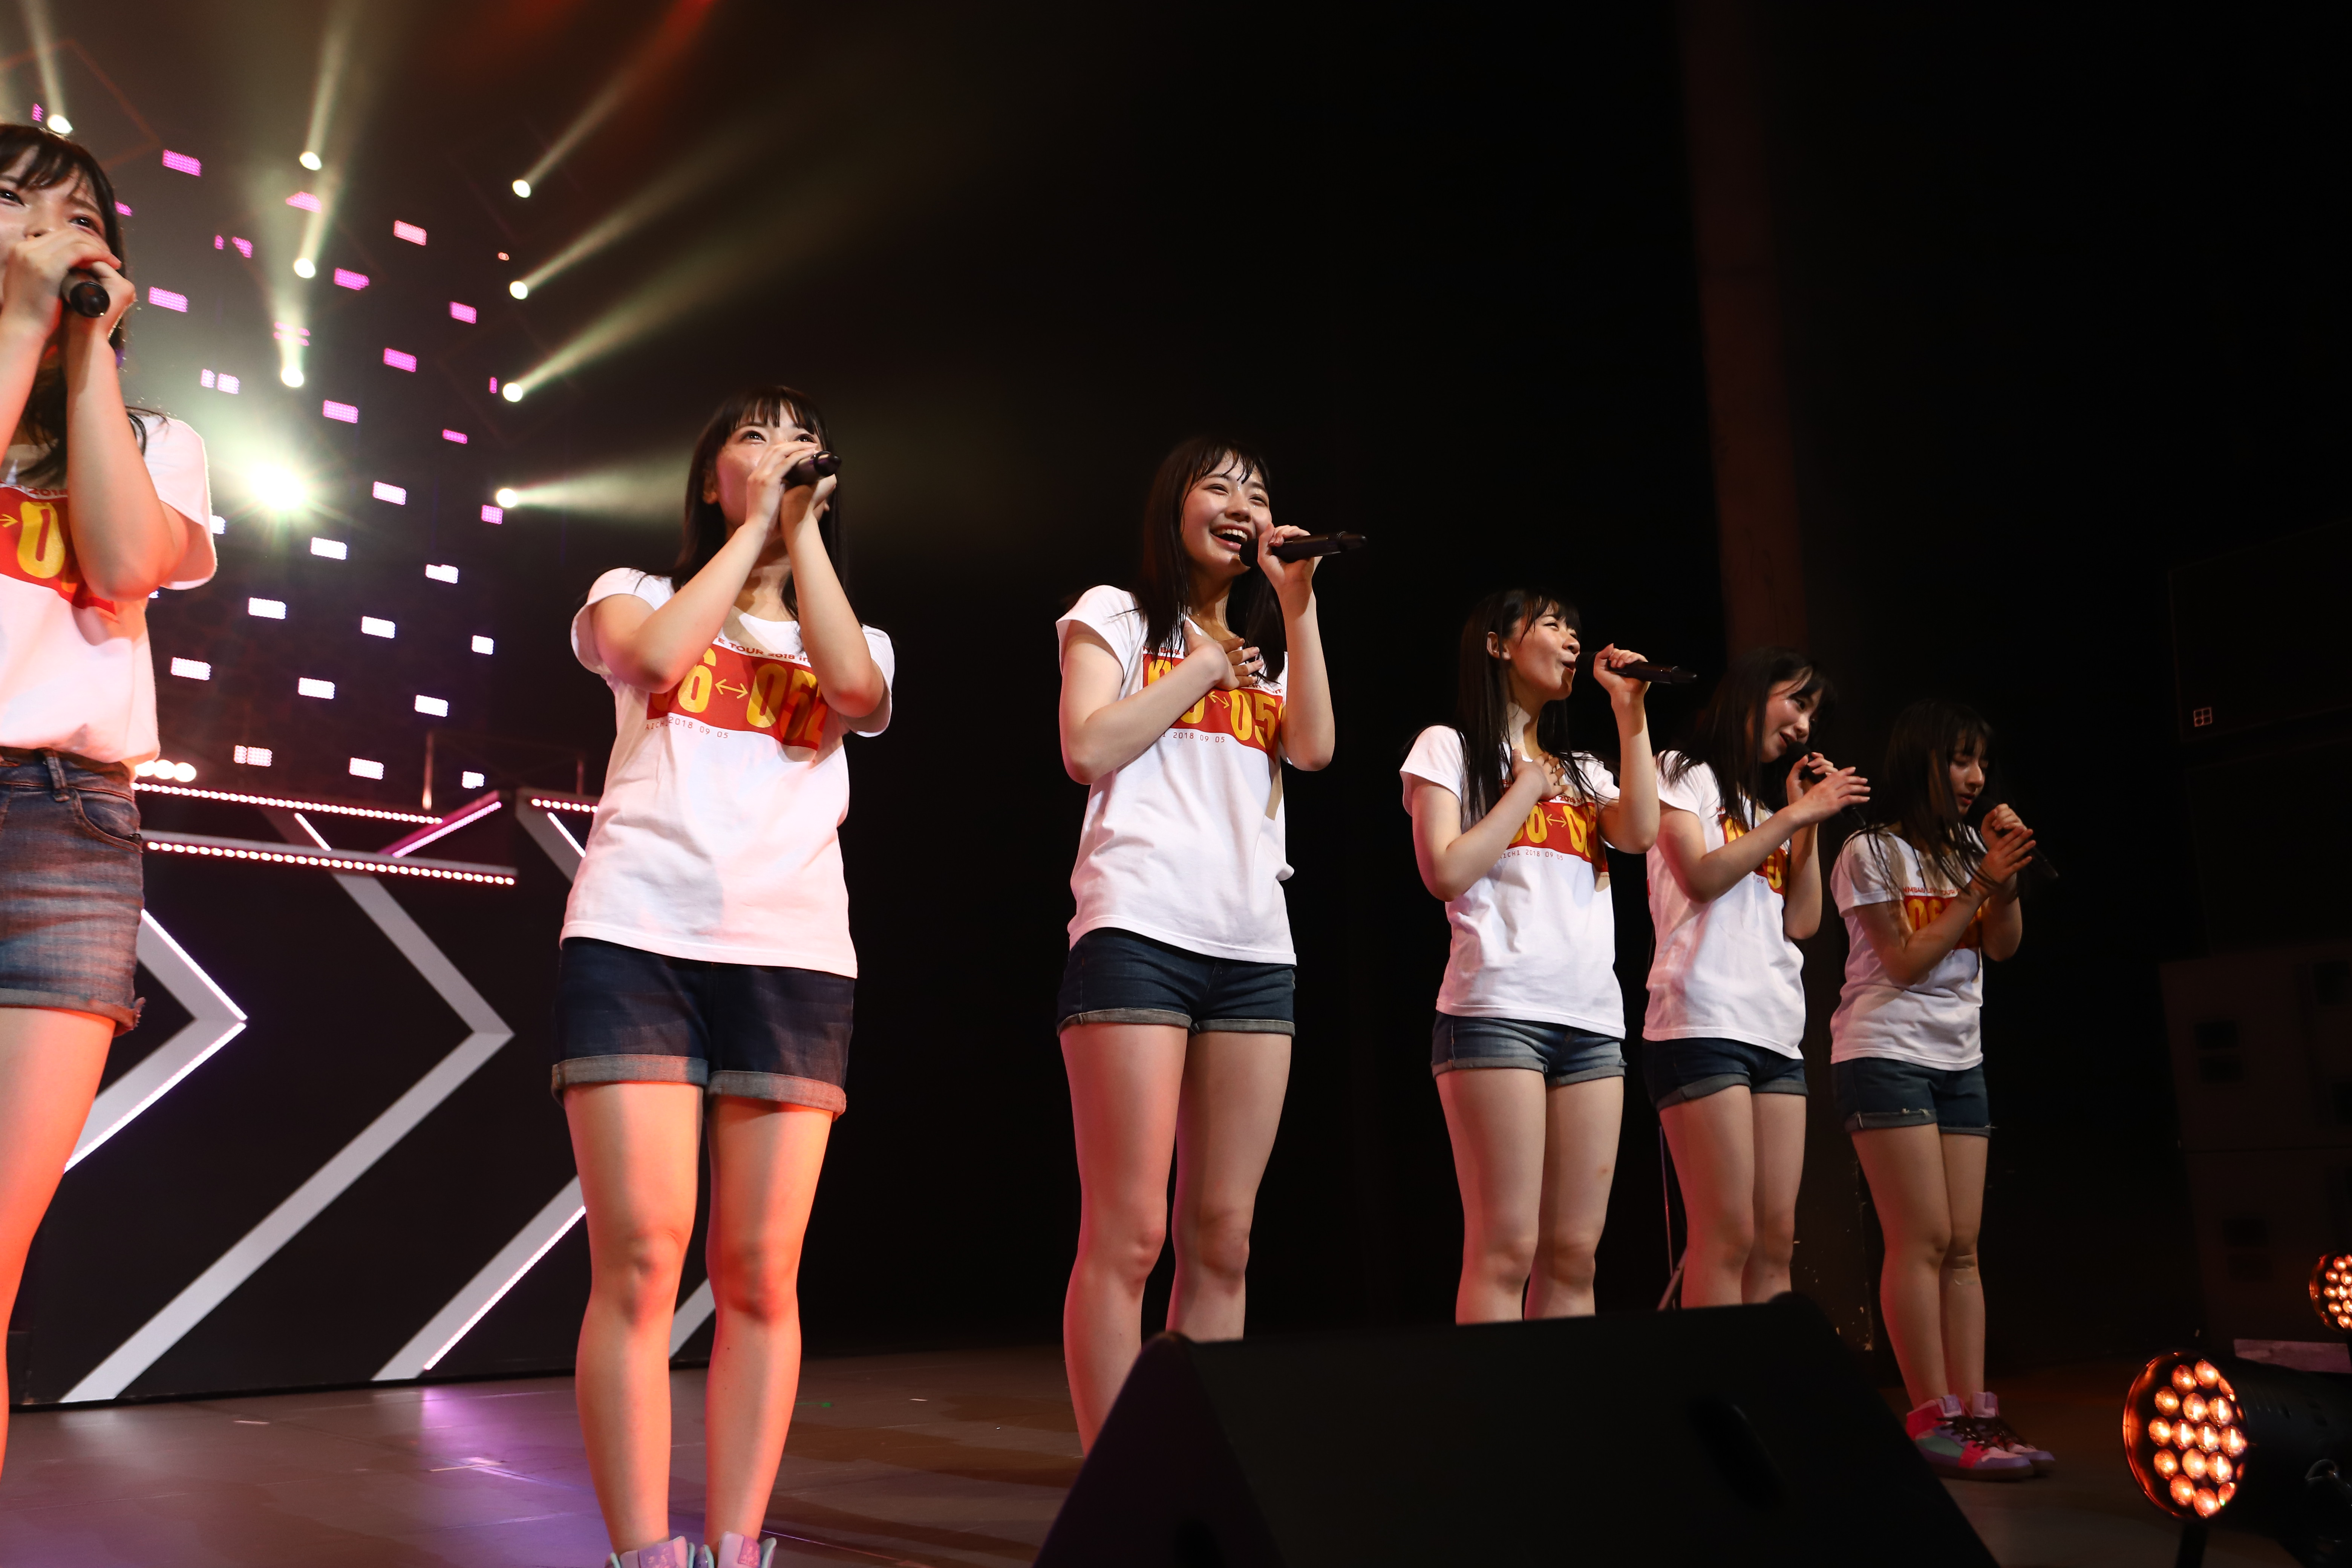 NMB48 LIVE TOUR 2018 名古屋 チームM公演-185